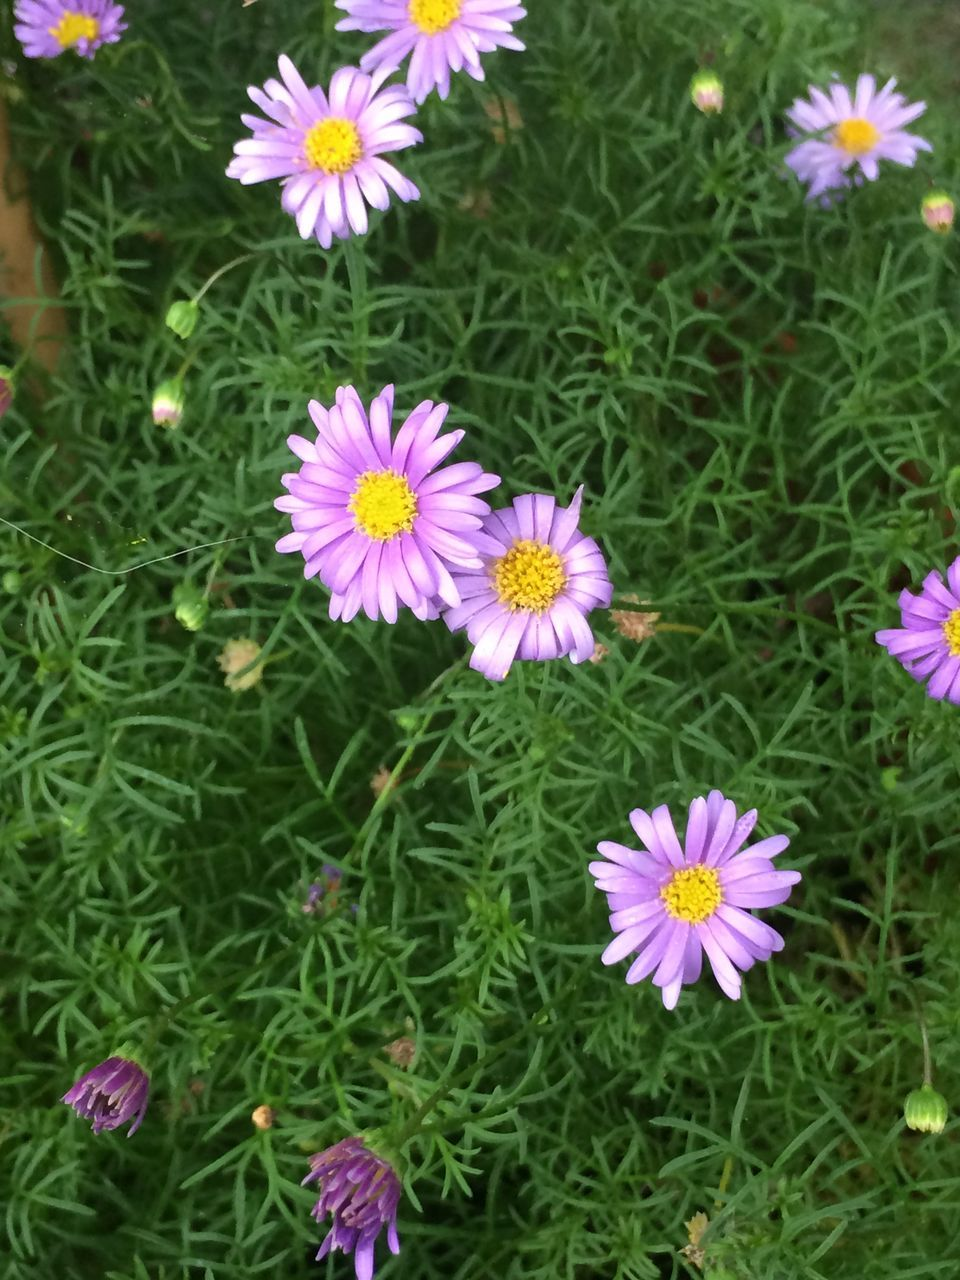 flower, growth, beauty in nature, nature, petal, fragility, freshness, plant, flower head, blooming, field, no people, green color, high angle view, outdoors, day, purple, grass, close-up